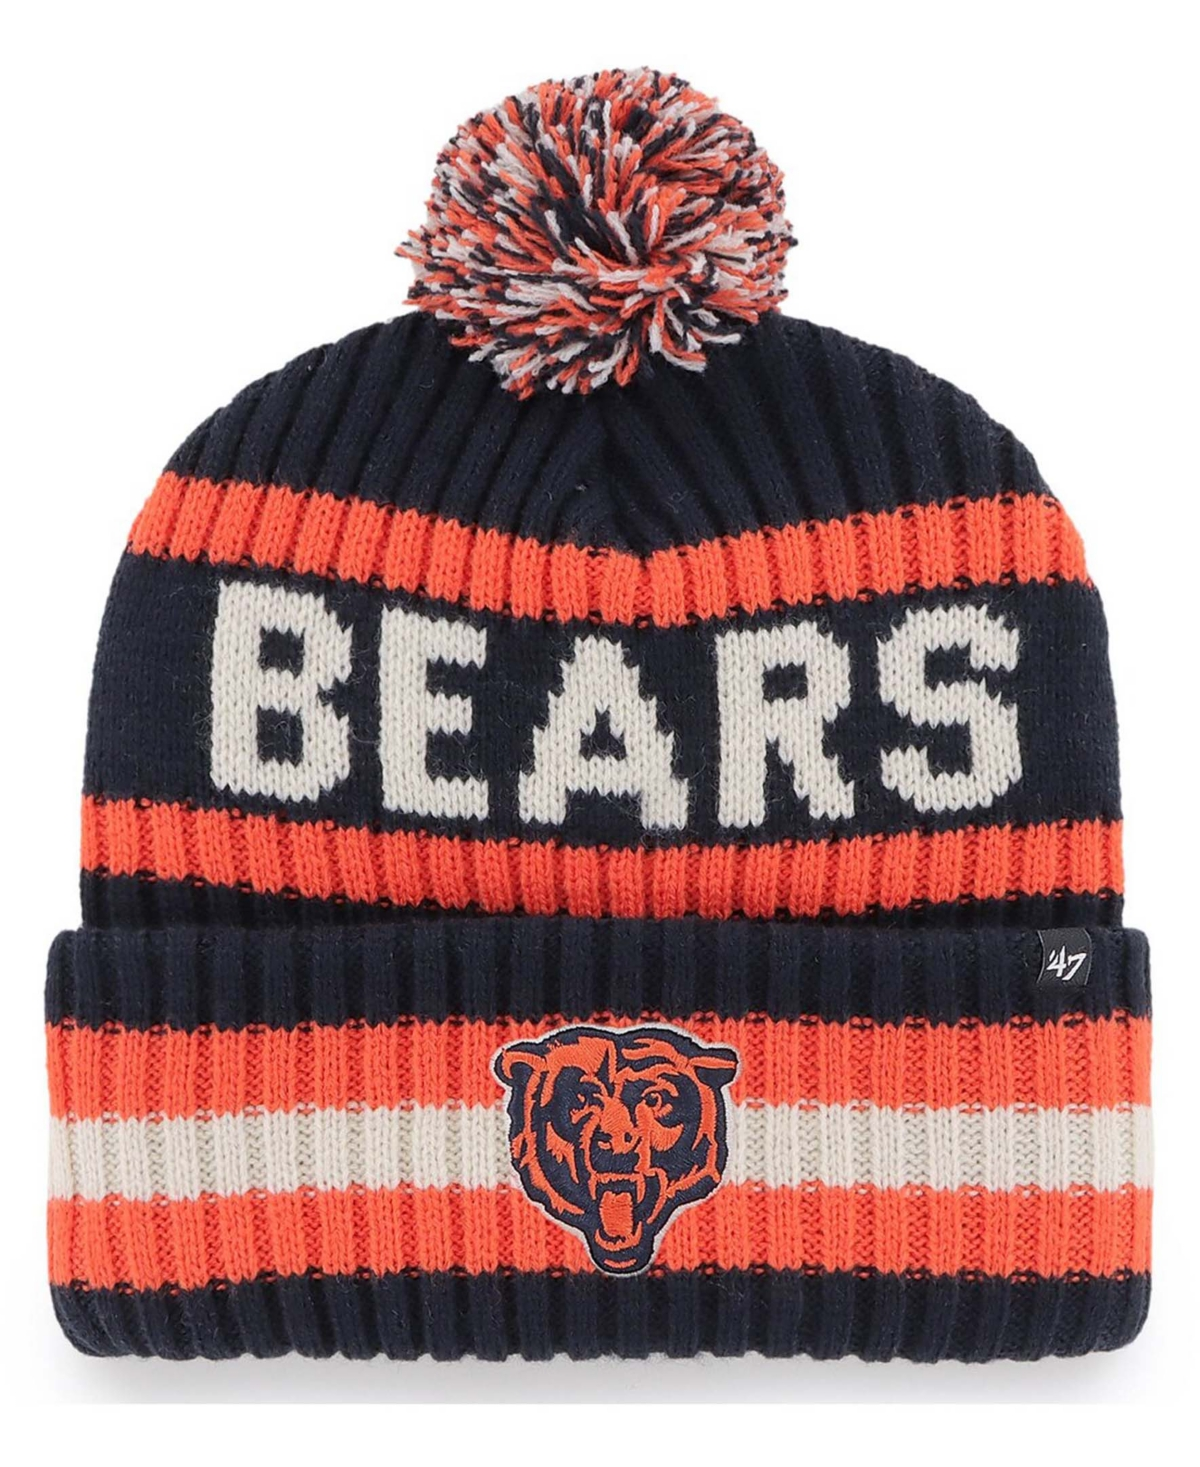 47 Brand Chicago Bears Bering Cuffed Knit Hat with Pom